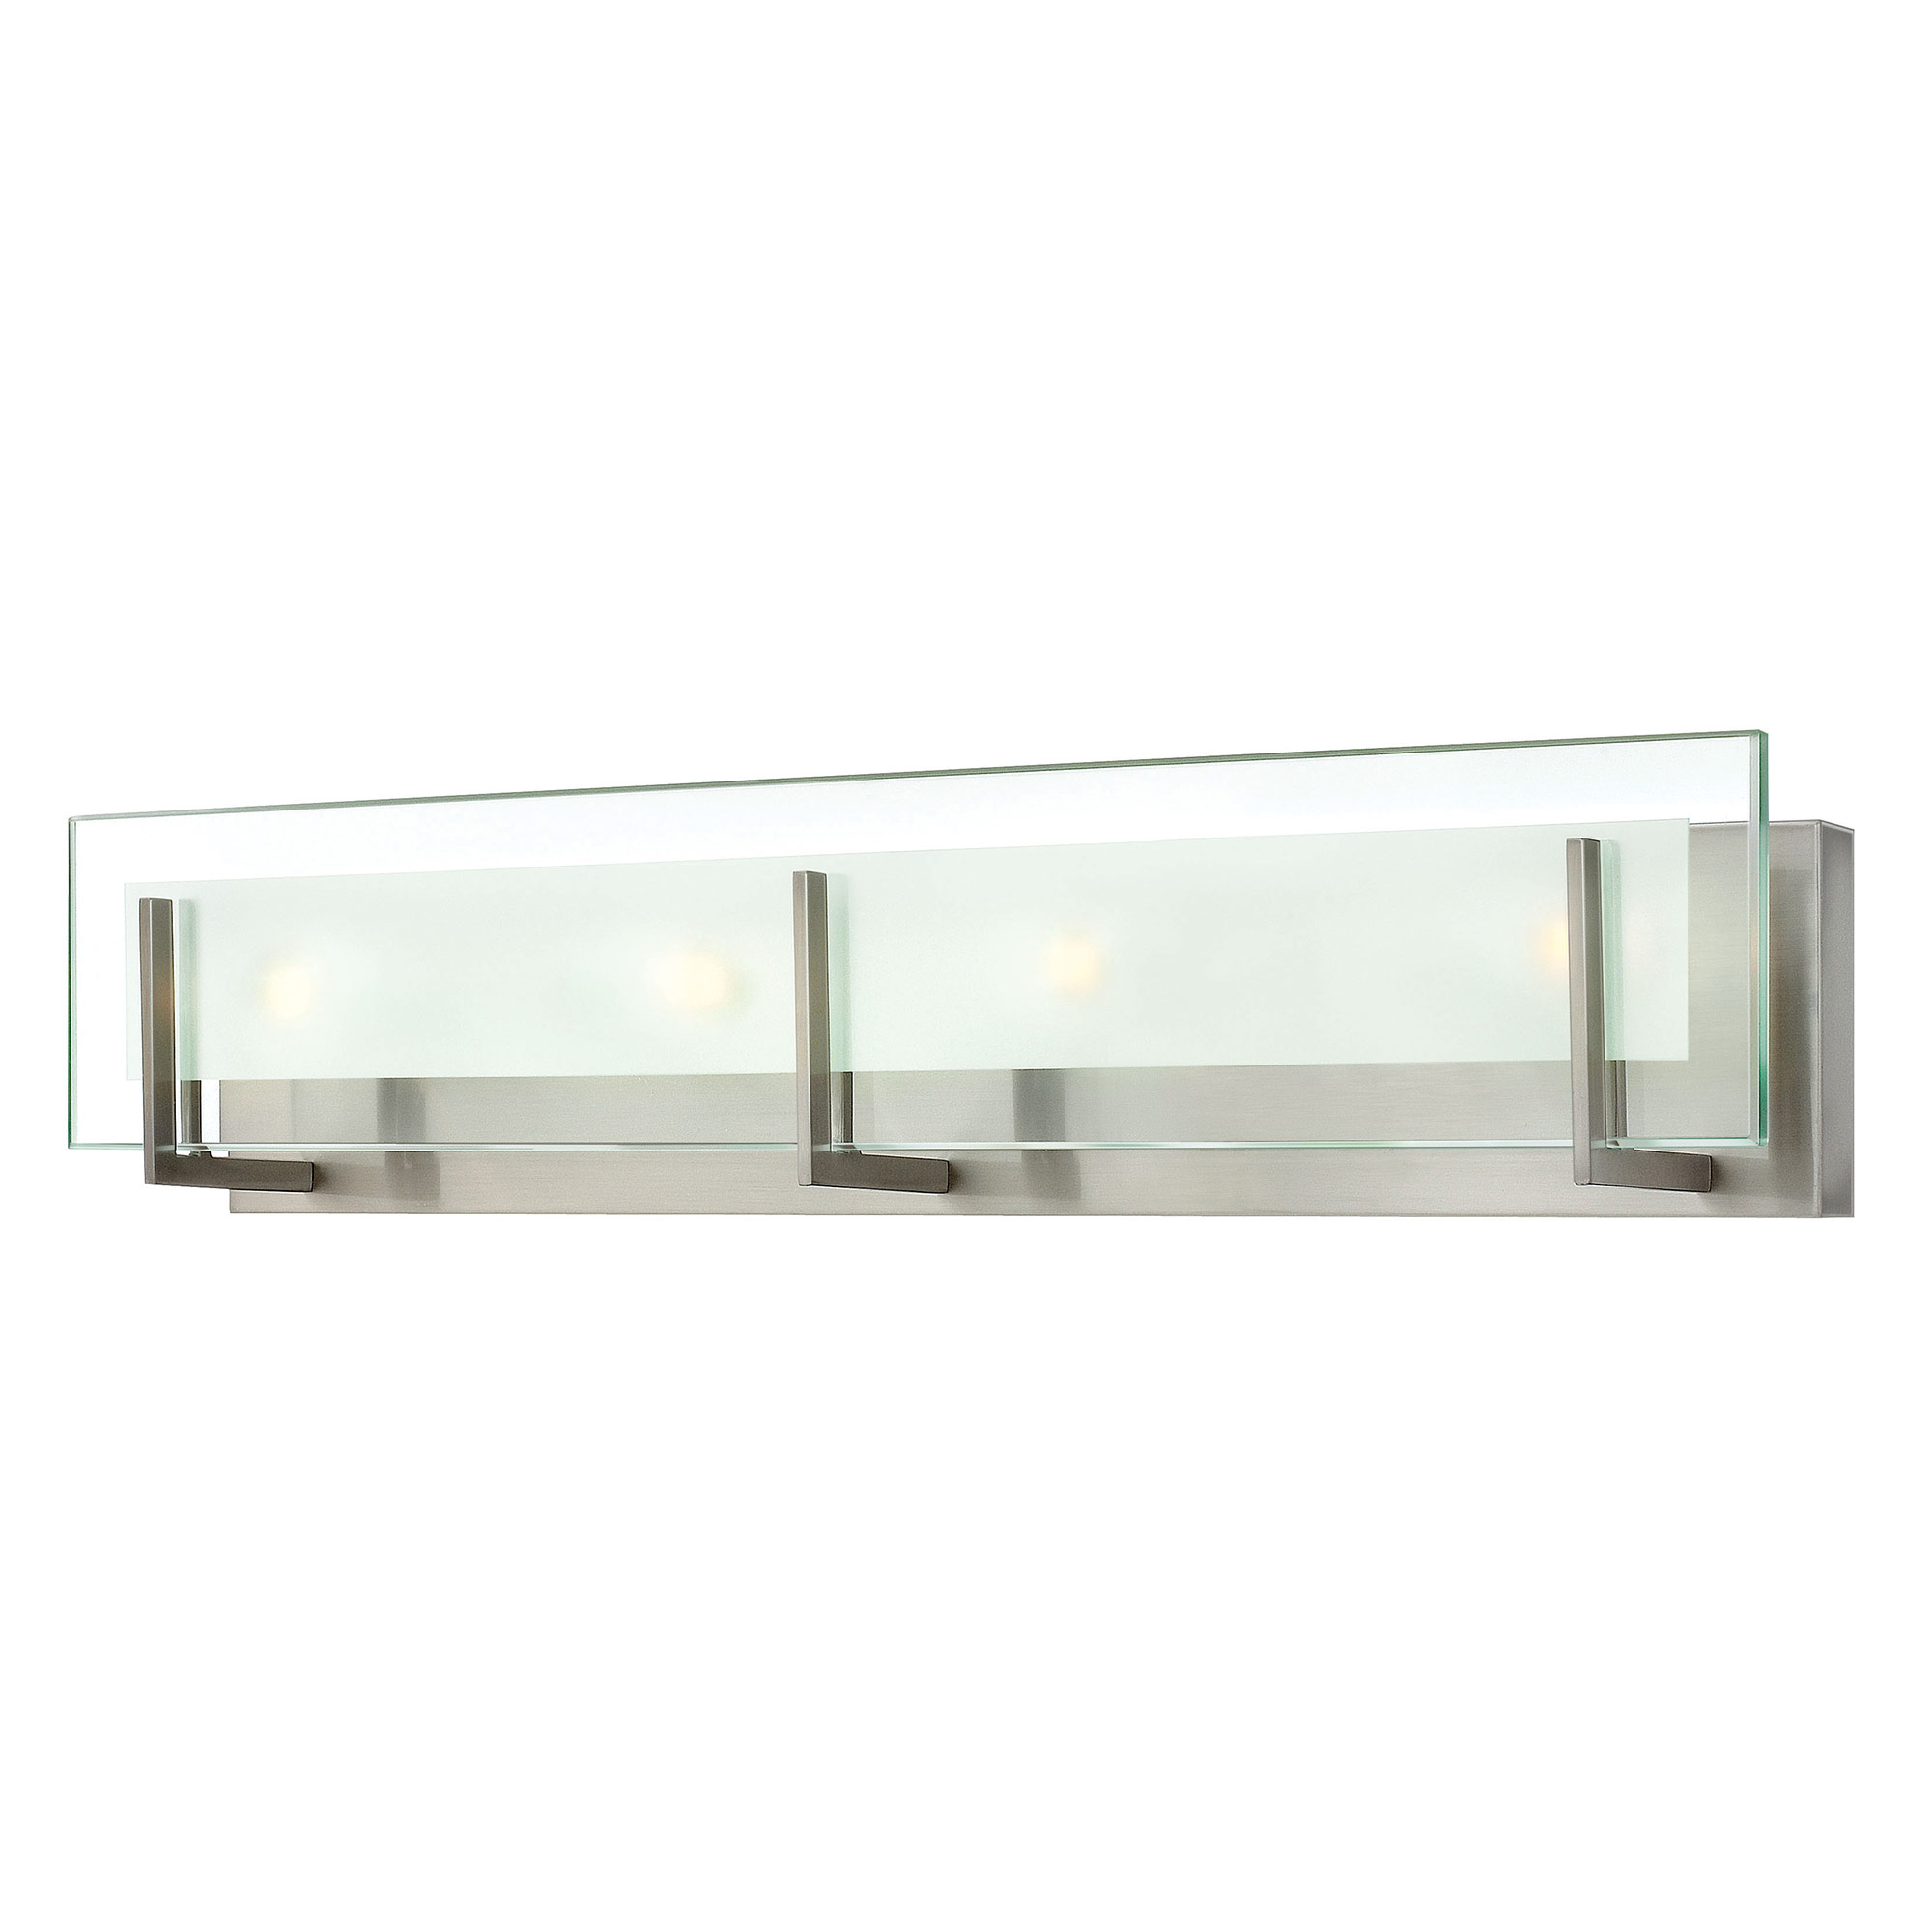 Bathroom Vanity Light by Hinkley Lighting | 5654BN